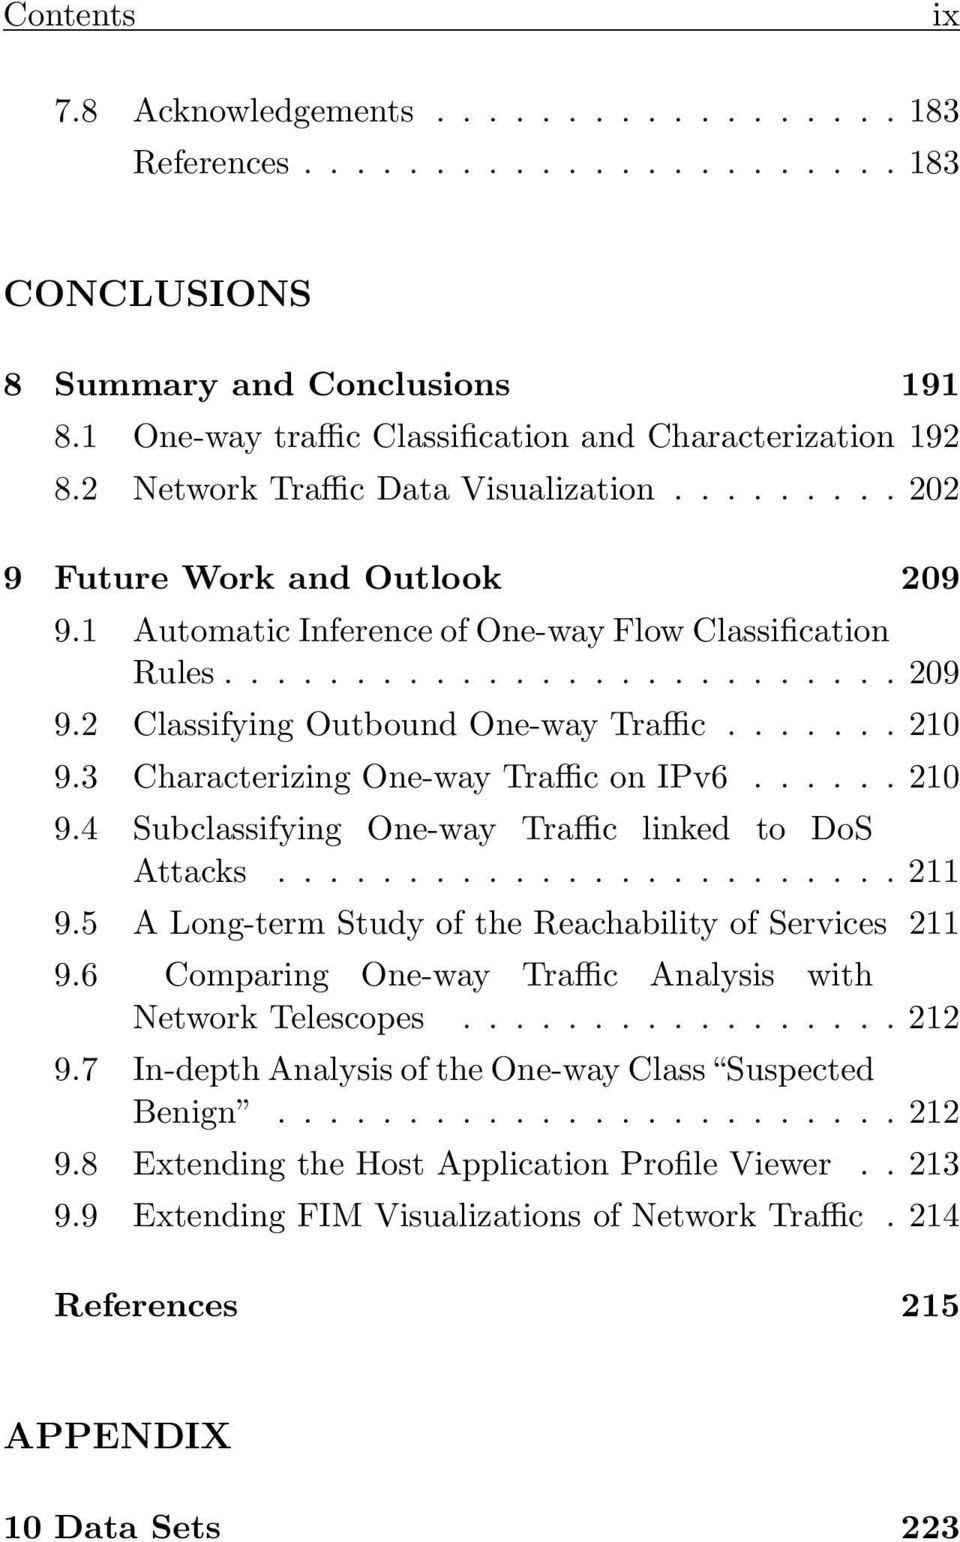 3 CharacterizingOne-wayTrafficonIPv6...210 9.4 Subclassifying One-way Traffic linked to DoS Attacks...211 9.5 A Long-term Study of the Reachability of Services 211 9.